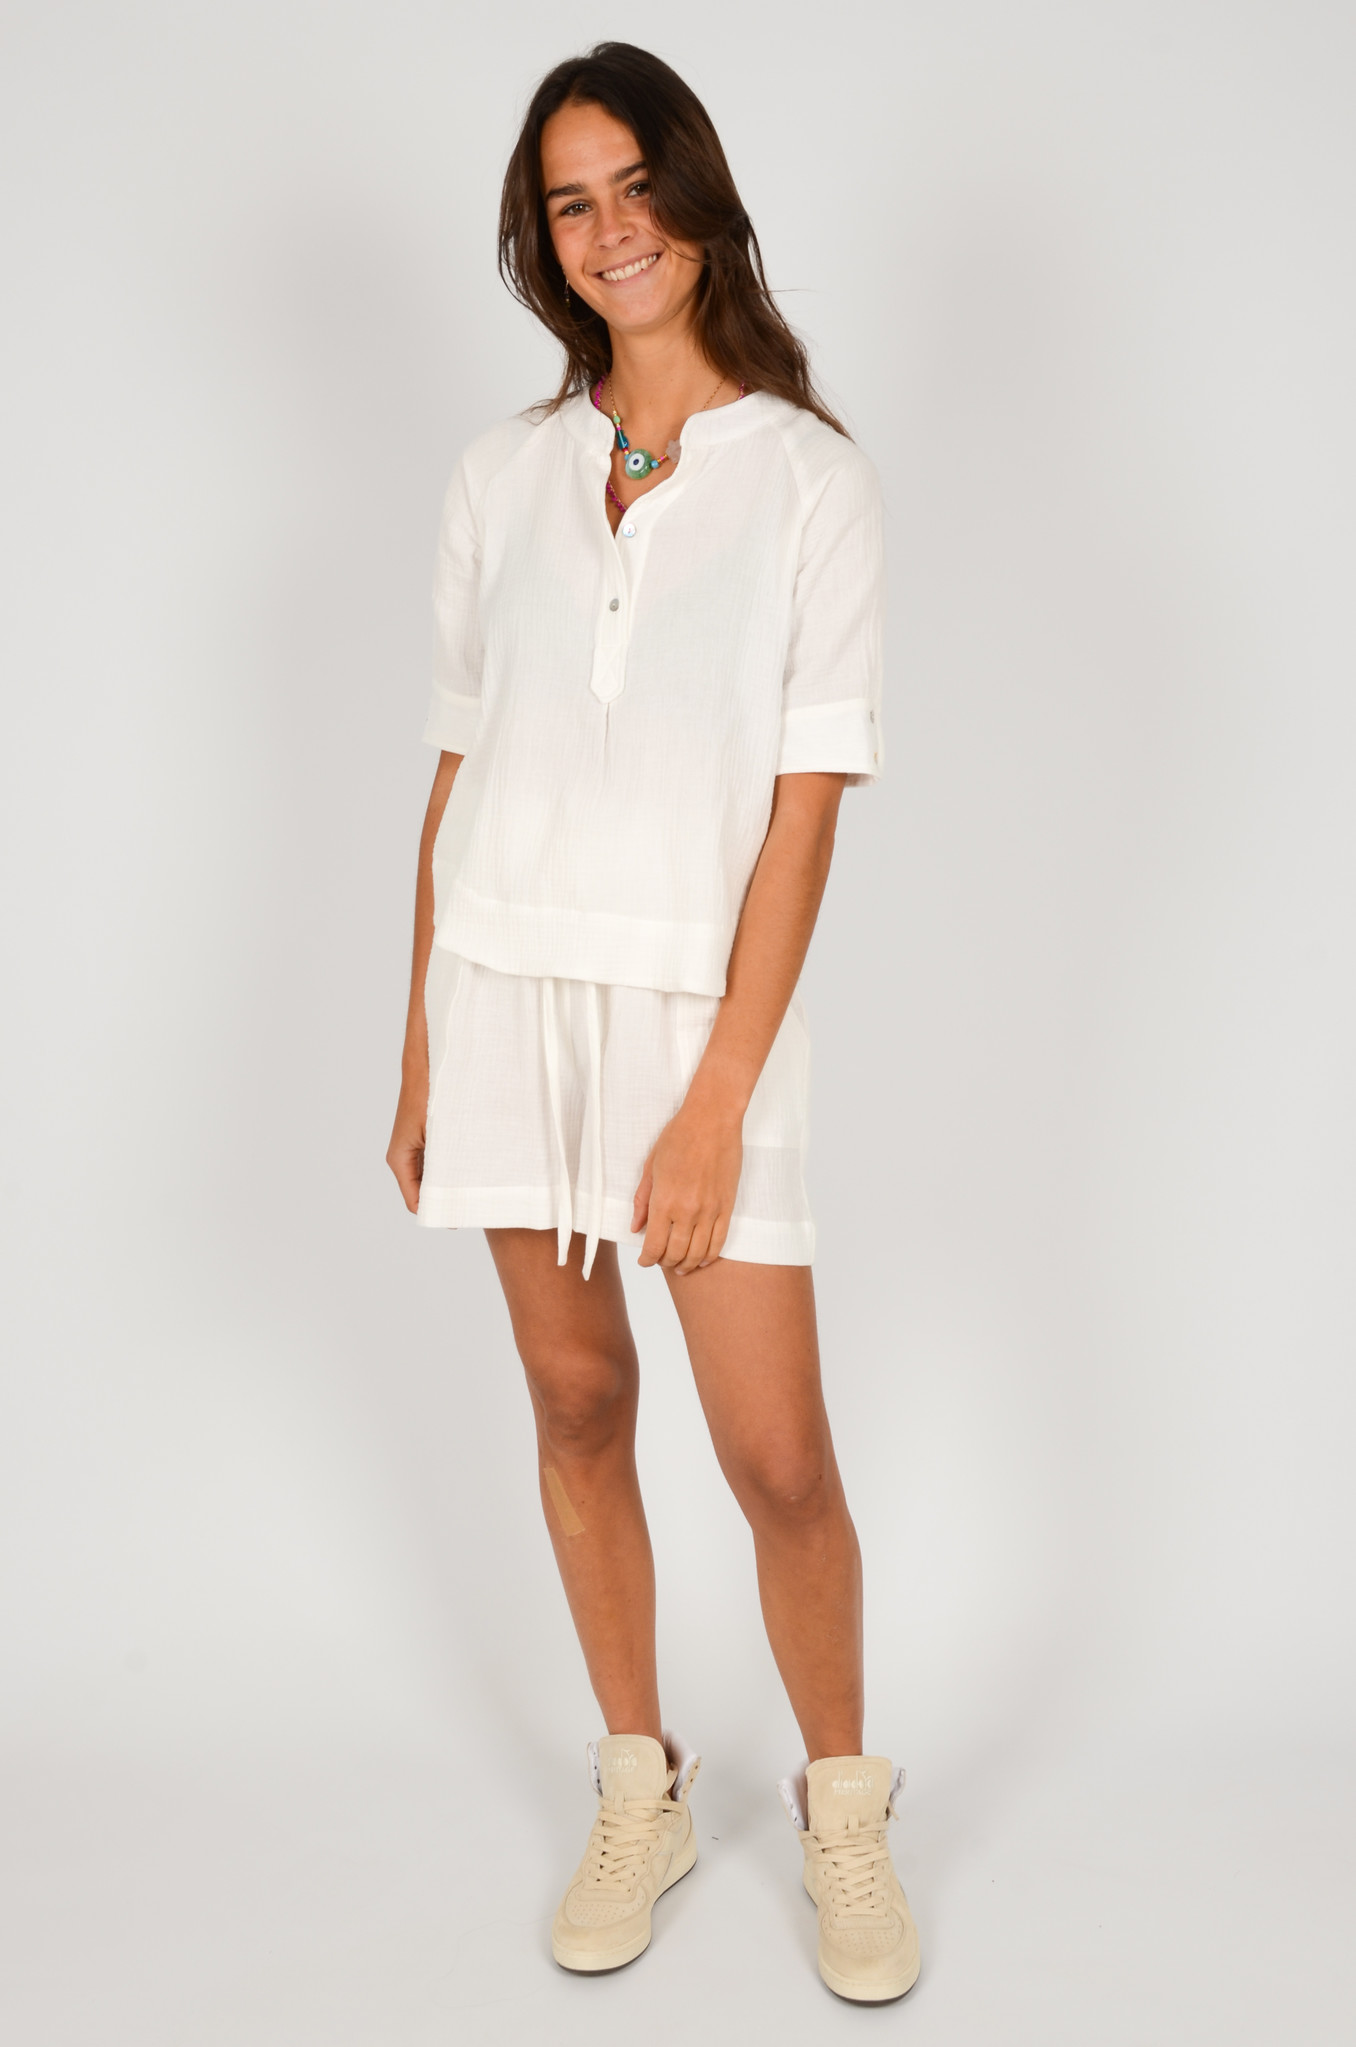 THEA SHIRT IN WHITE-5